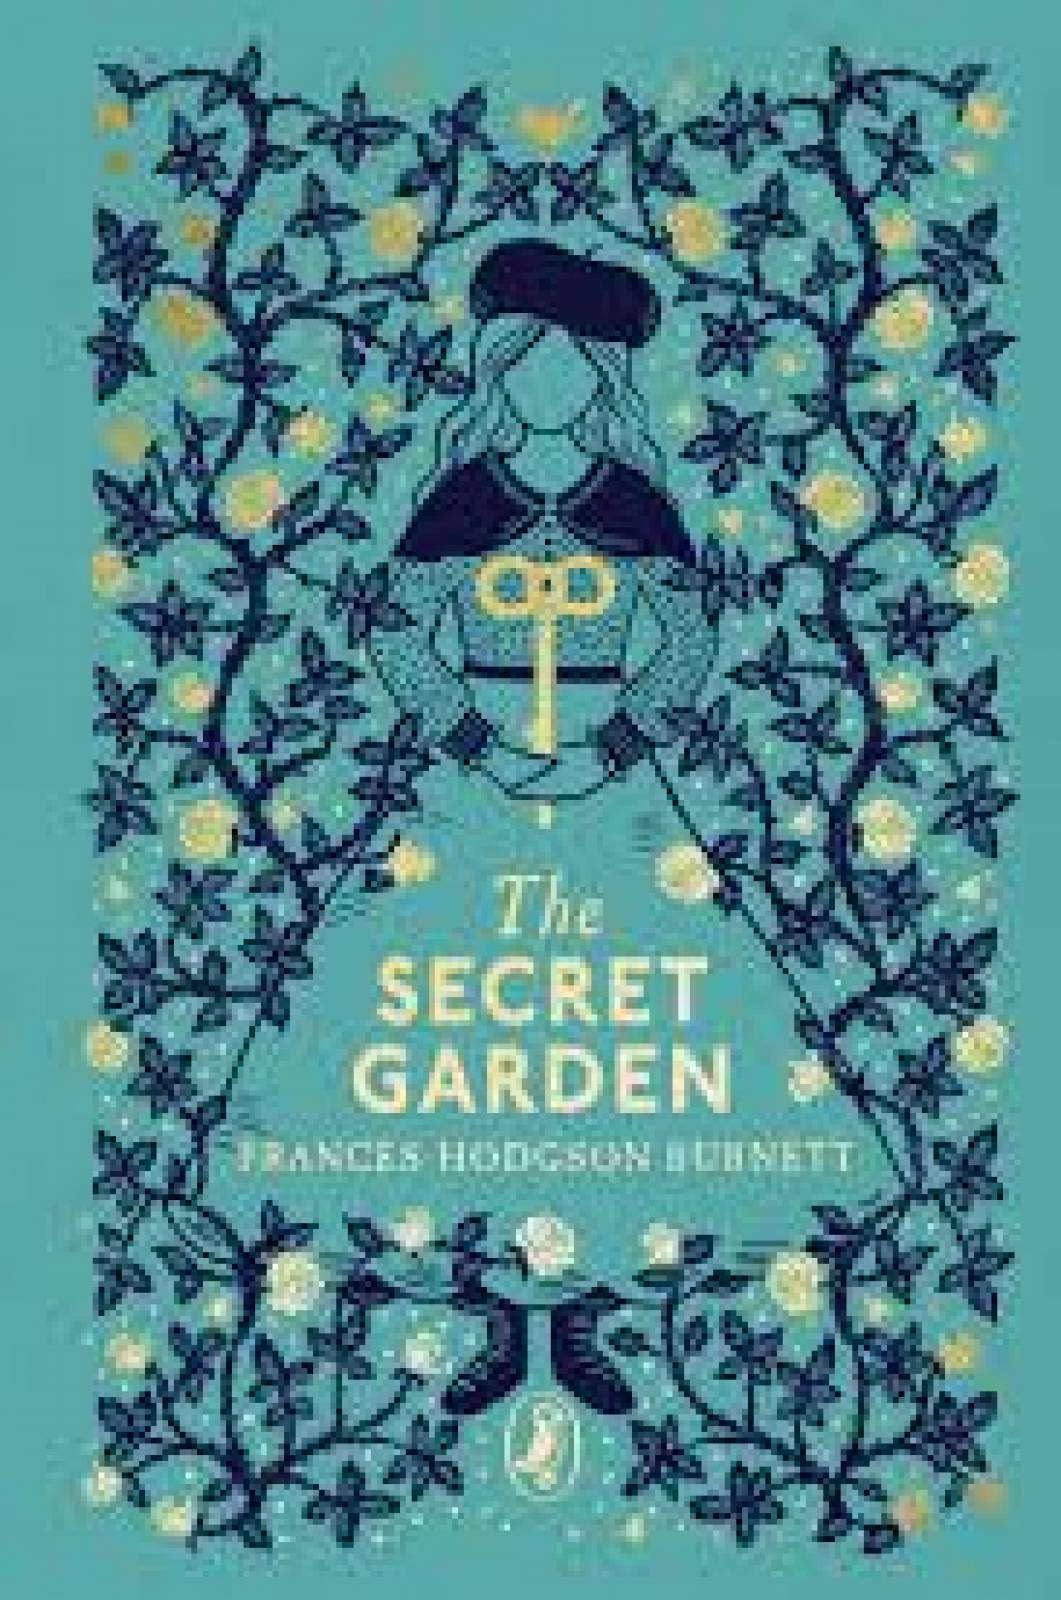 The Secret Garden Puffin Cloth Bound Classics Book thumbnails